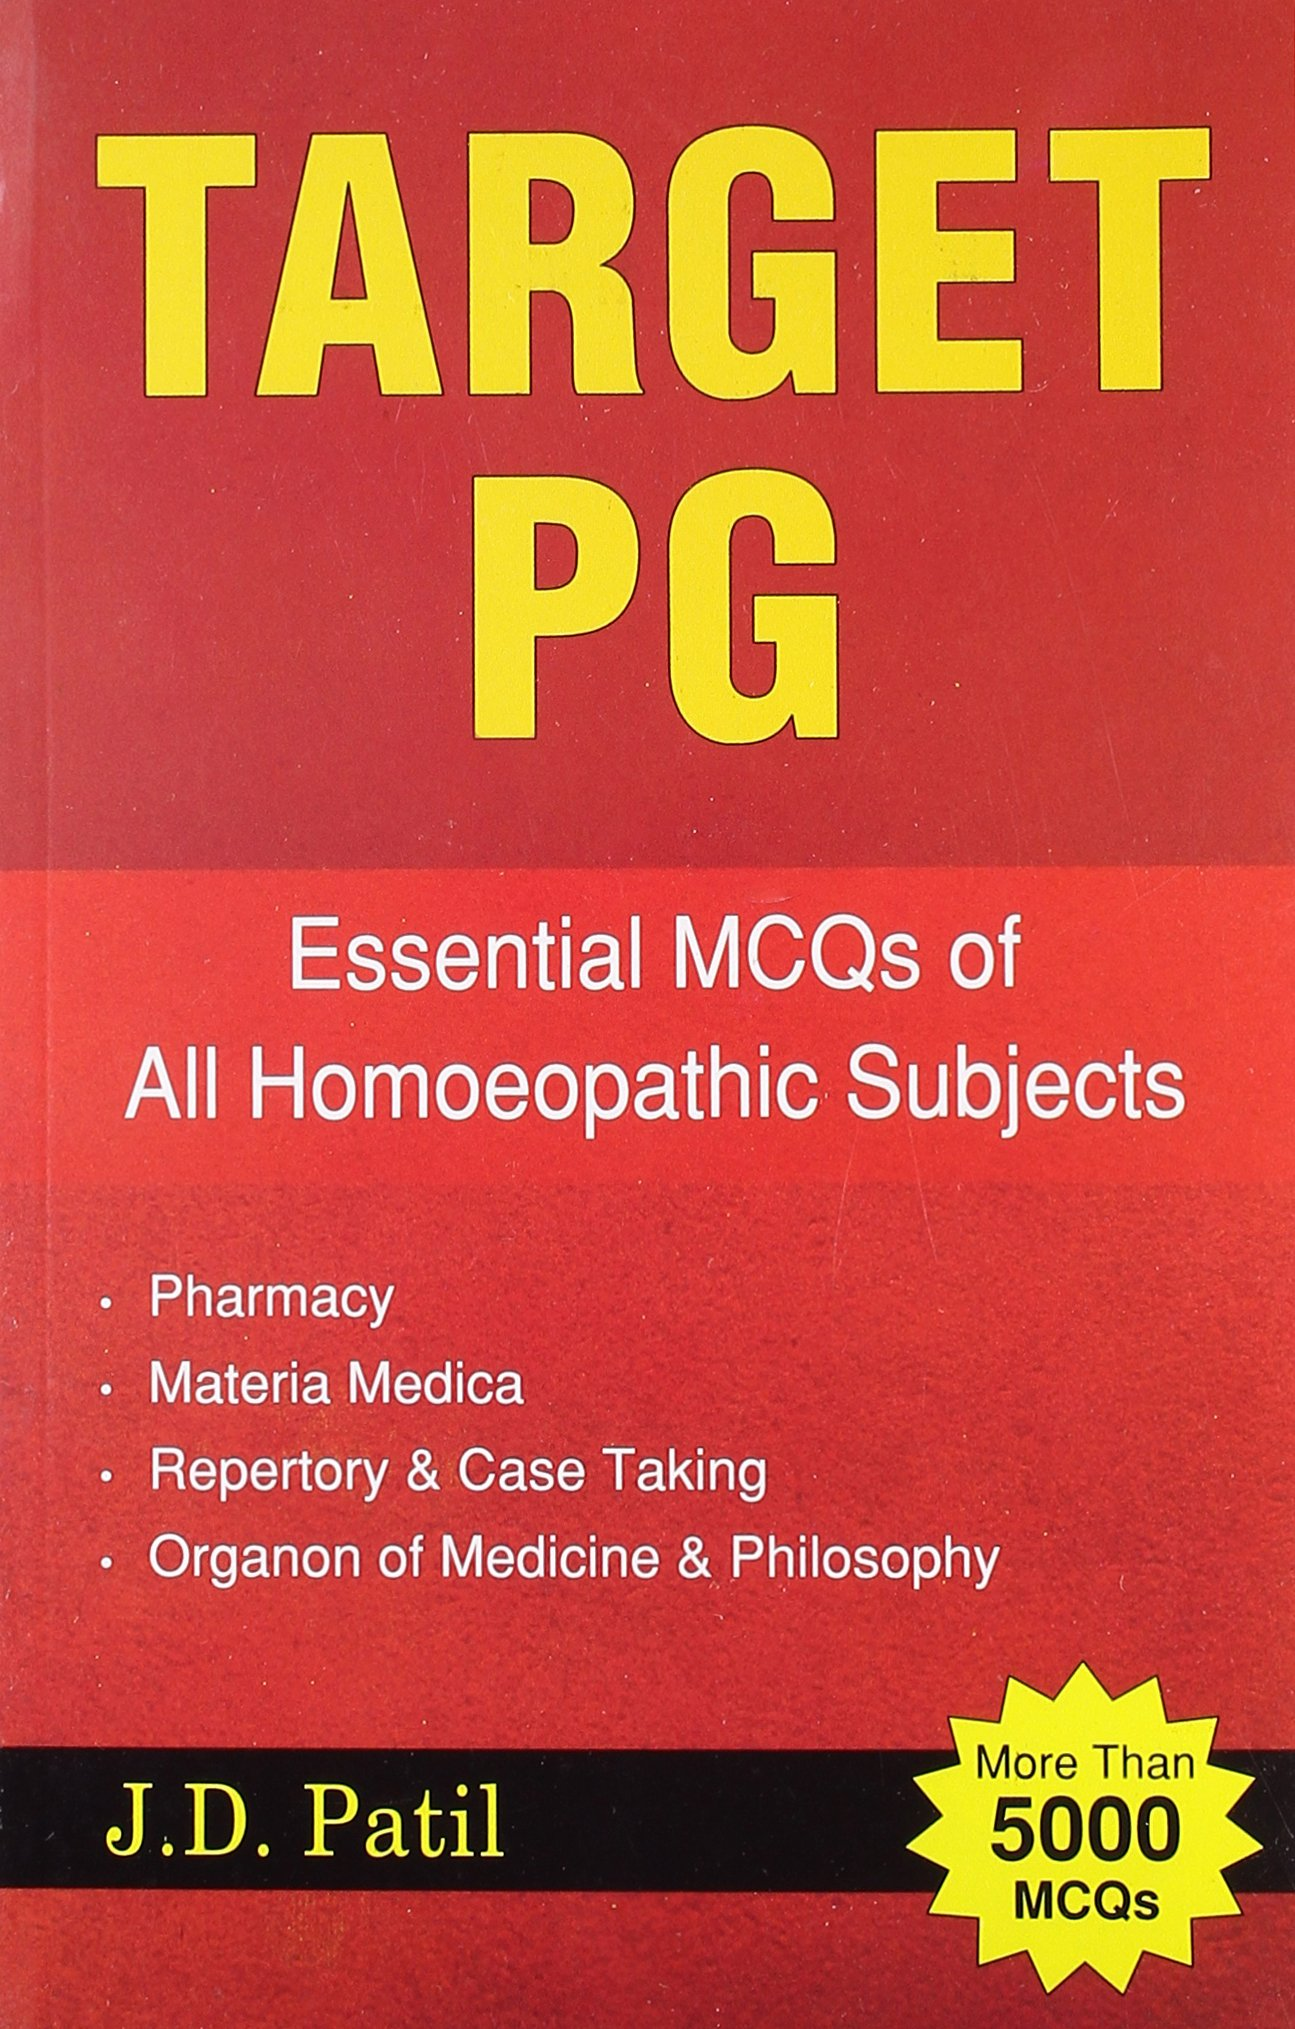 Target PG - Essential MCQs of all Homeopathic Subjects (more than 5000 MCQs) pdf epub